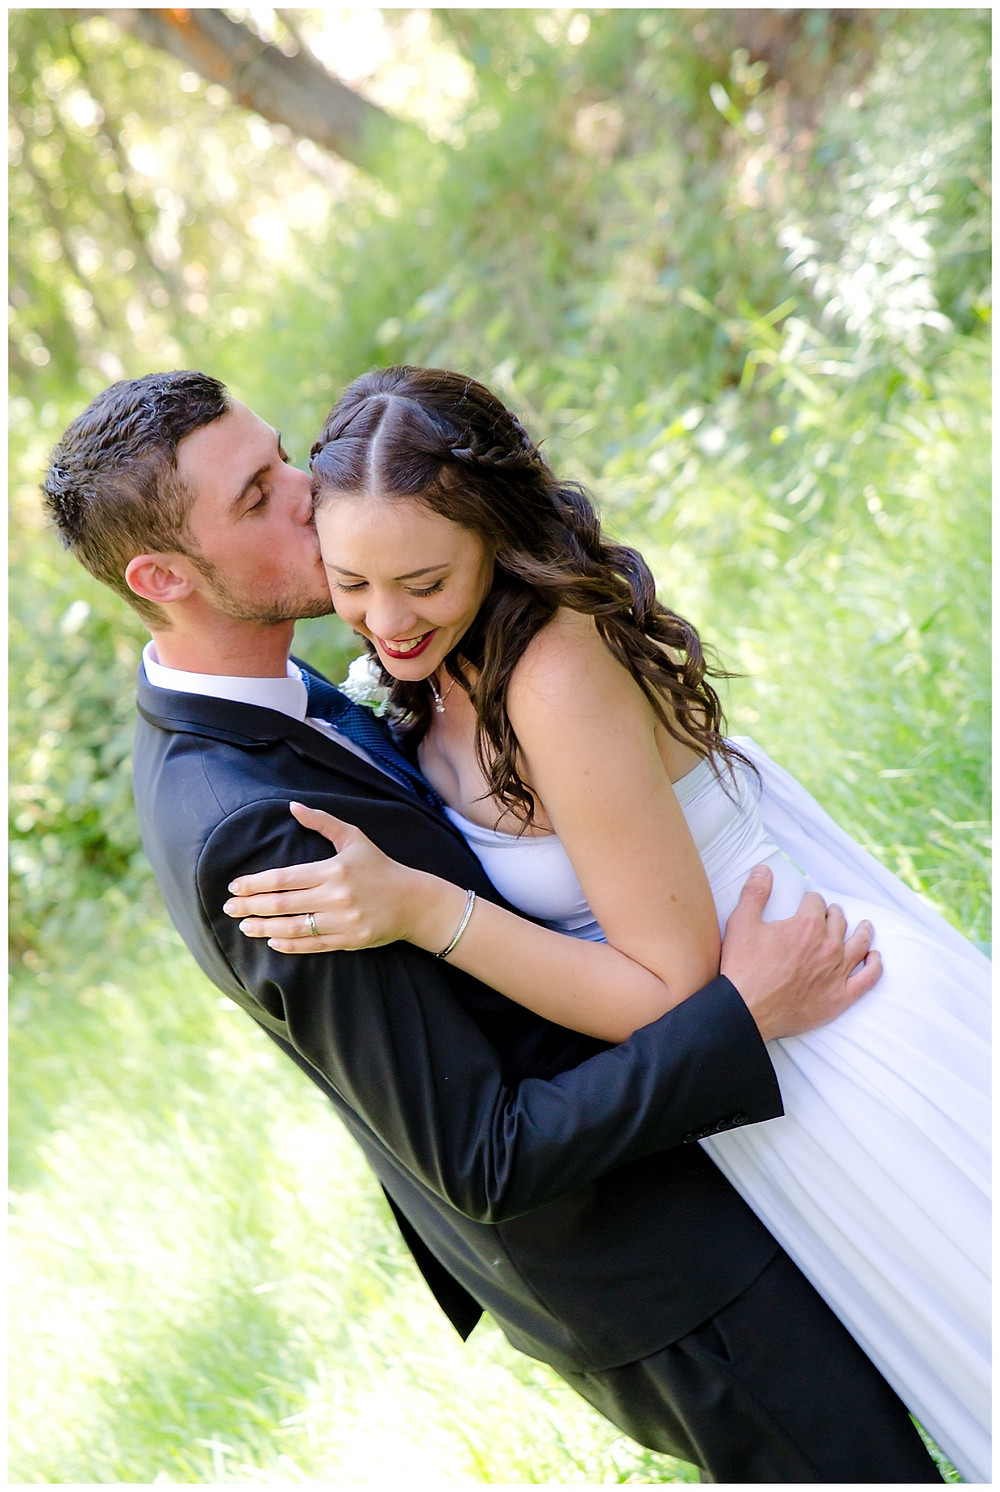 Best of weddings 2017 by Jaqui Franco Wedding photography Cape Town